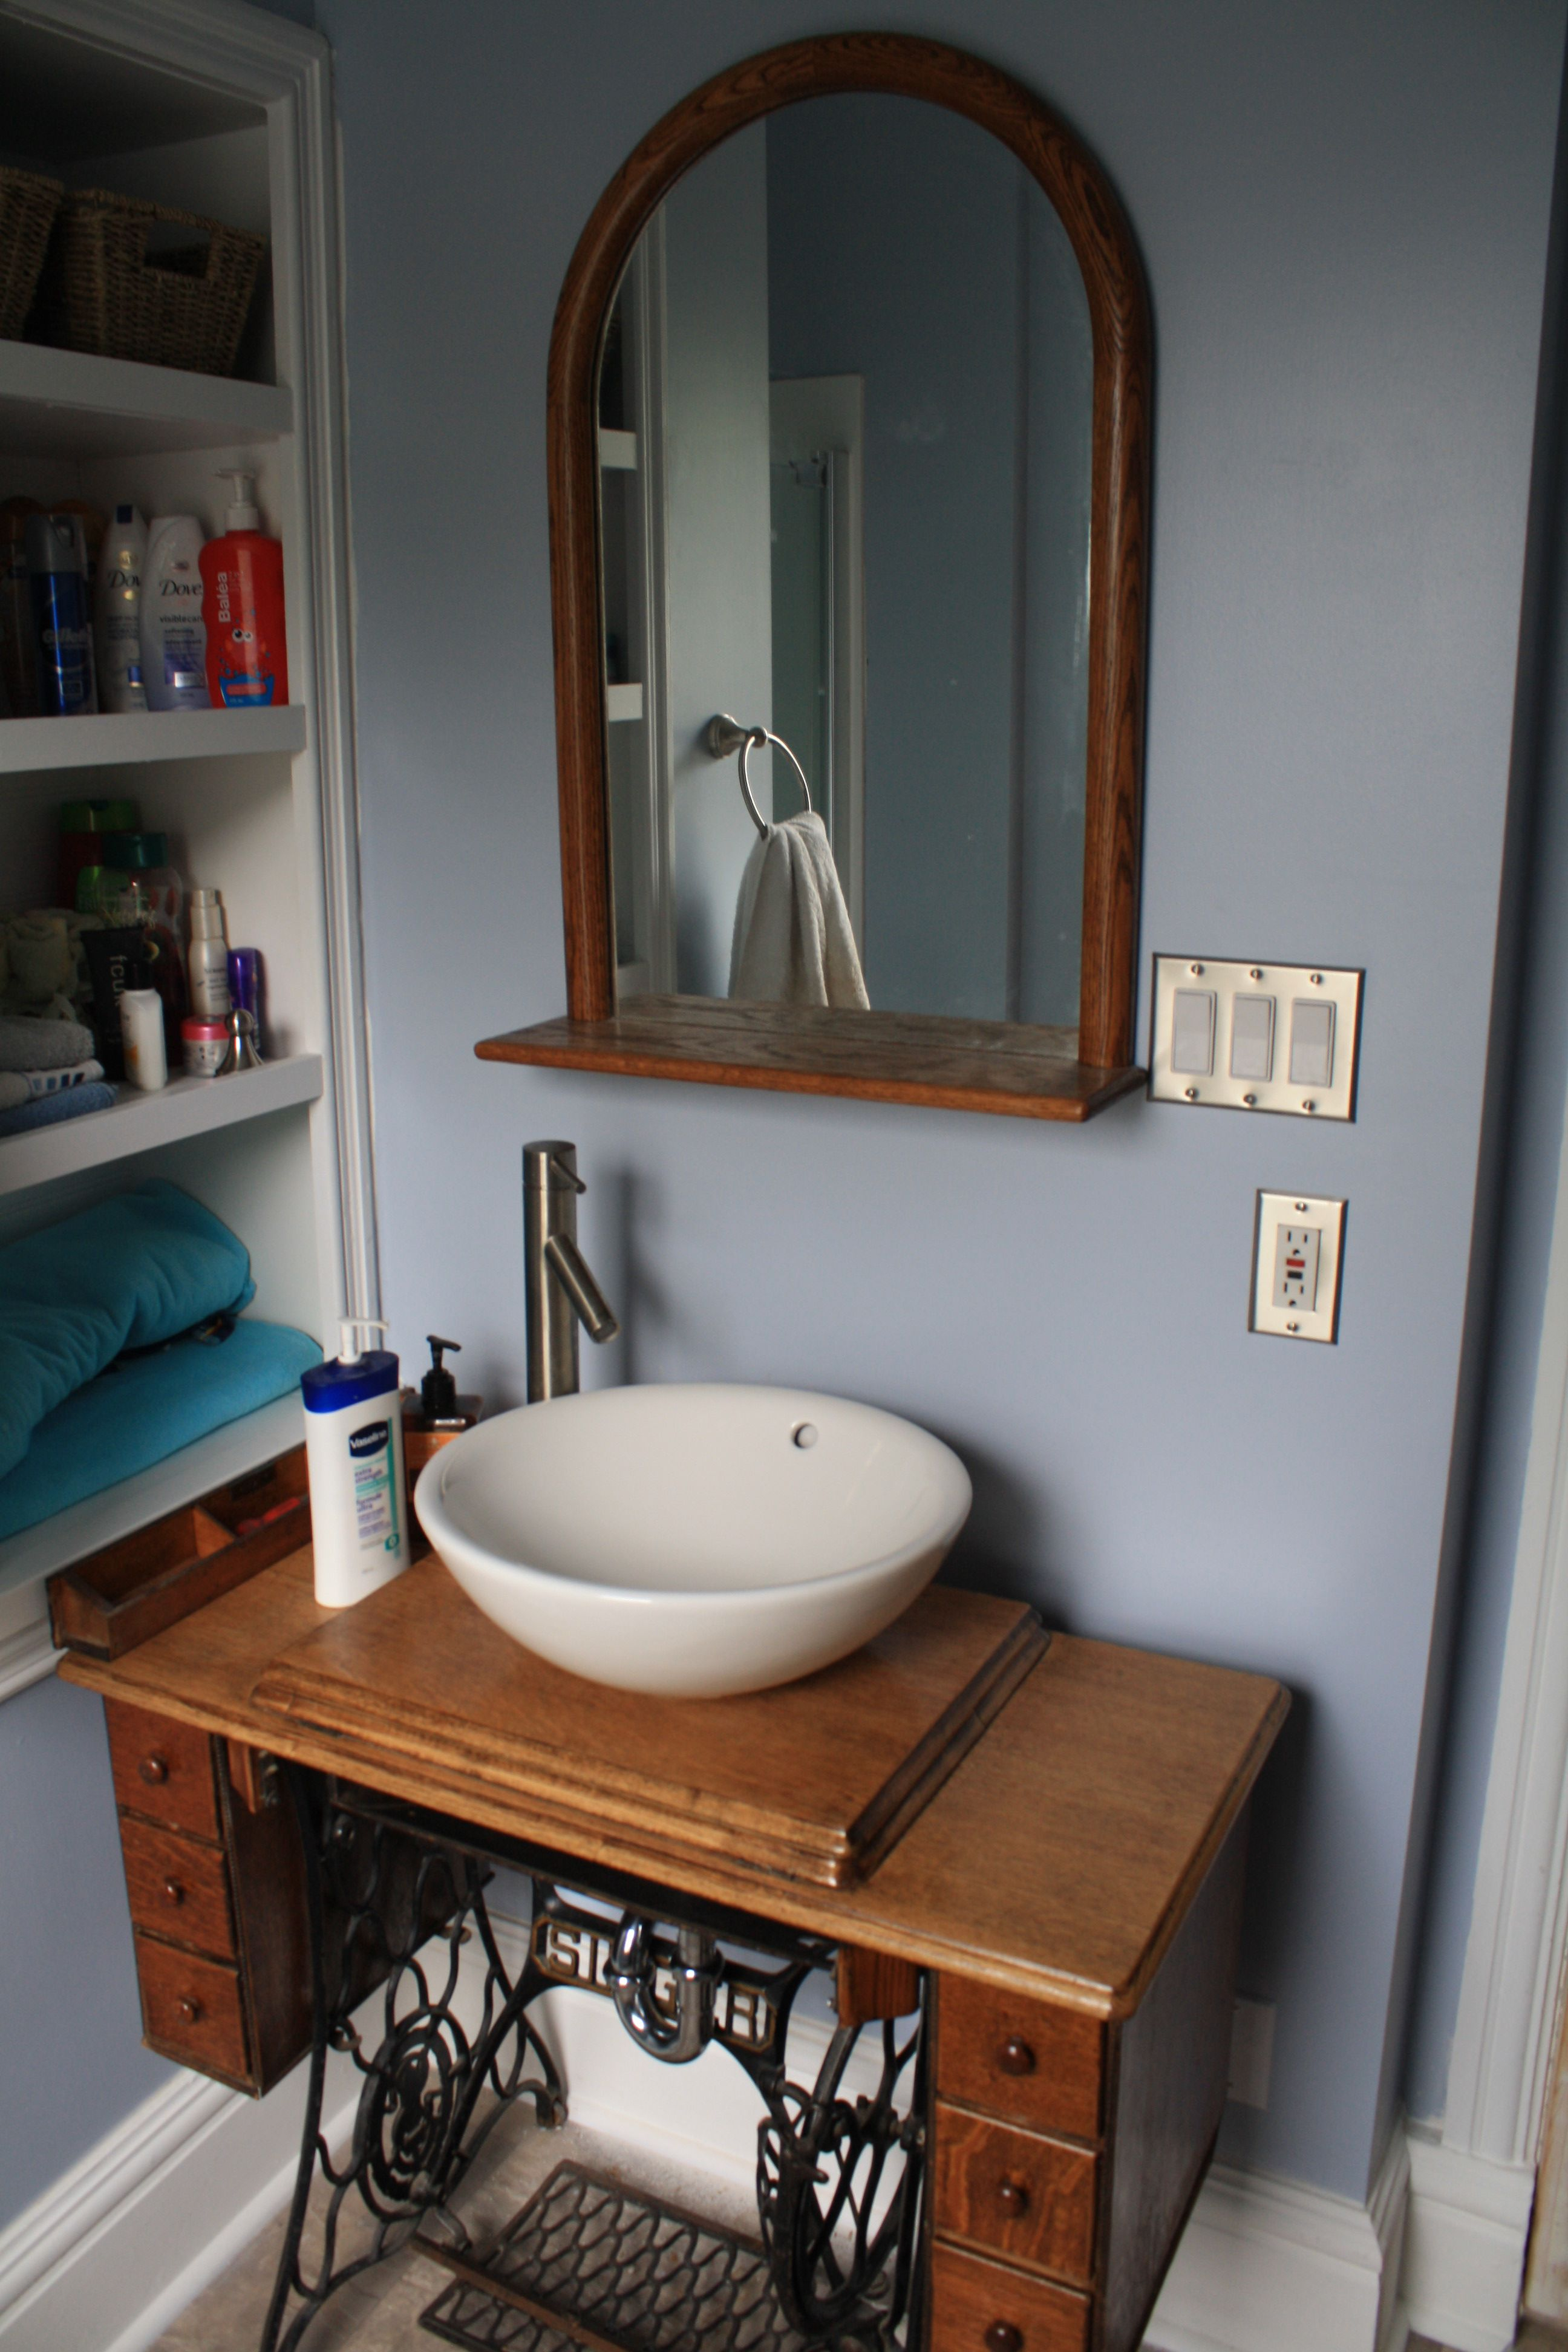 Singer Sewing Machine Converted To Bathroom Vanity Bathroom